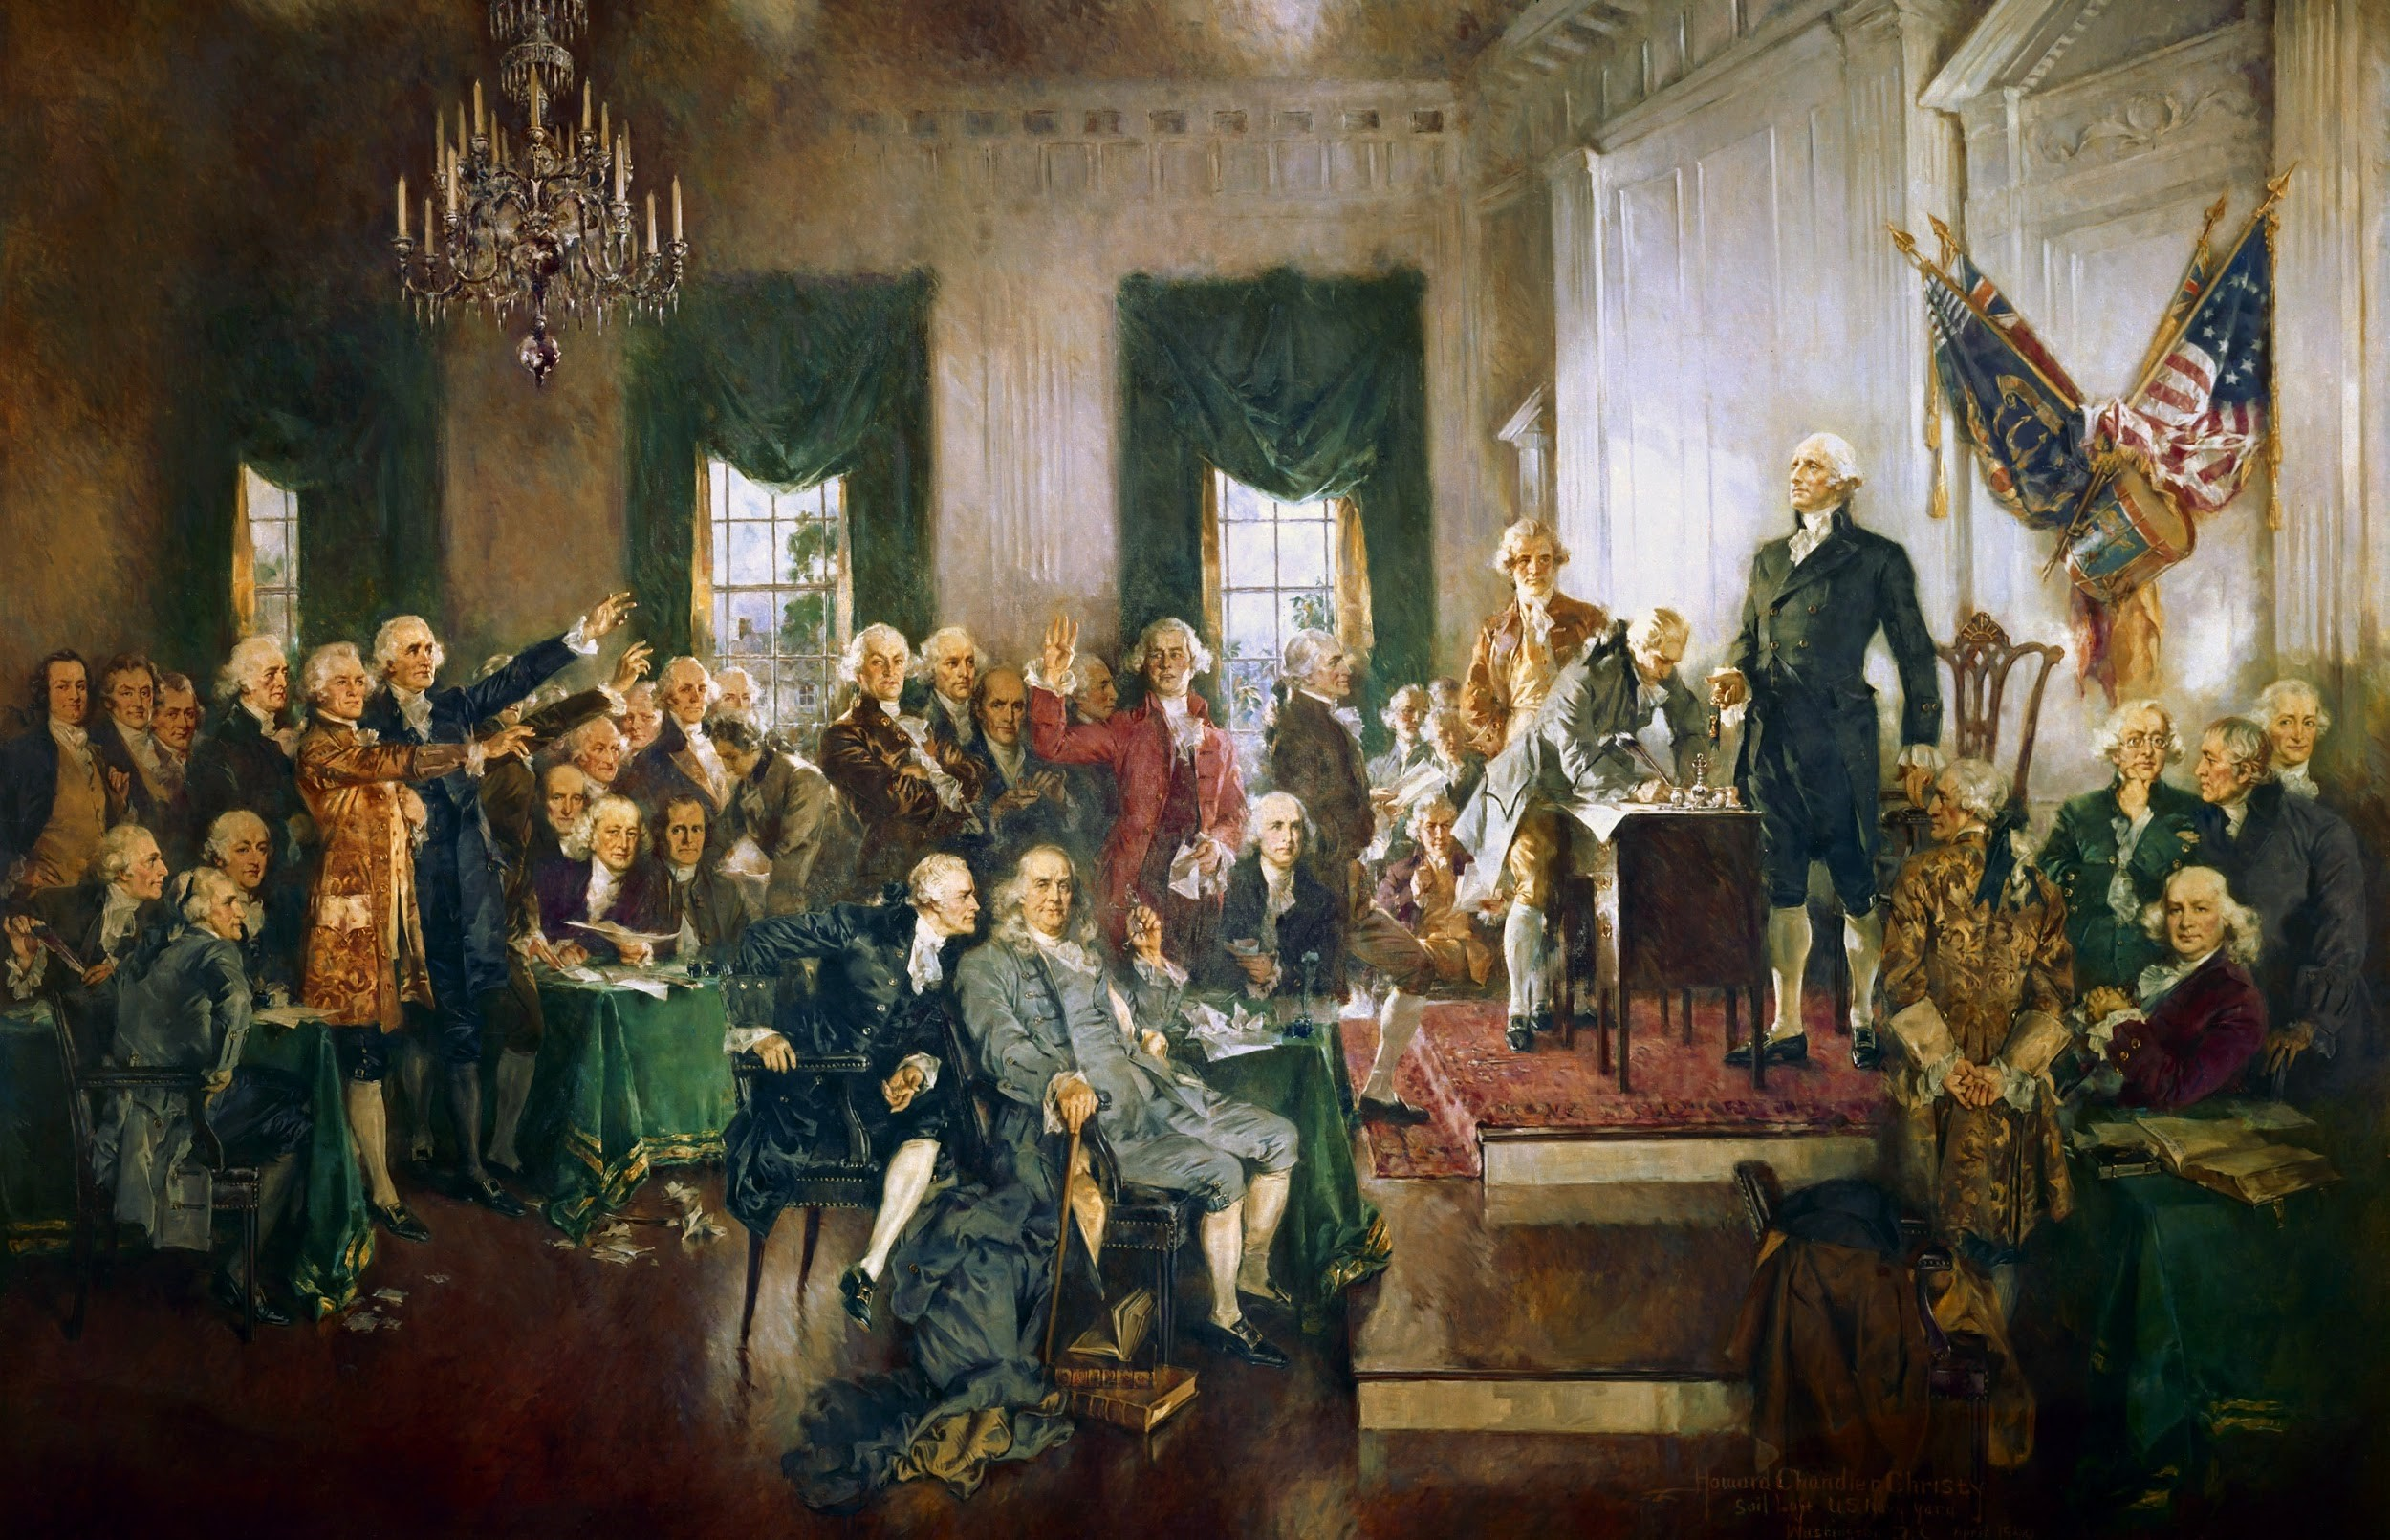 Scene at the Signing of the United States Constitution, by Howard Chandler Christy (1940).